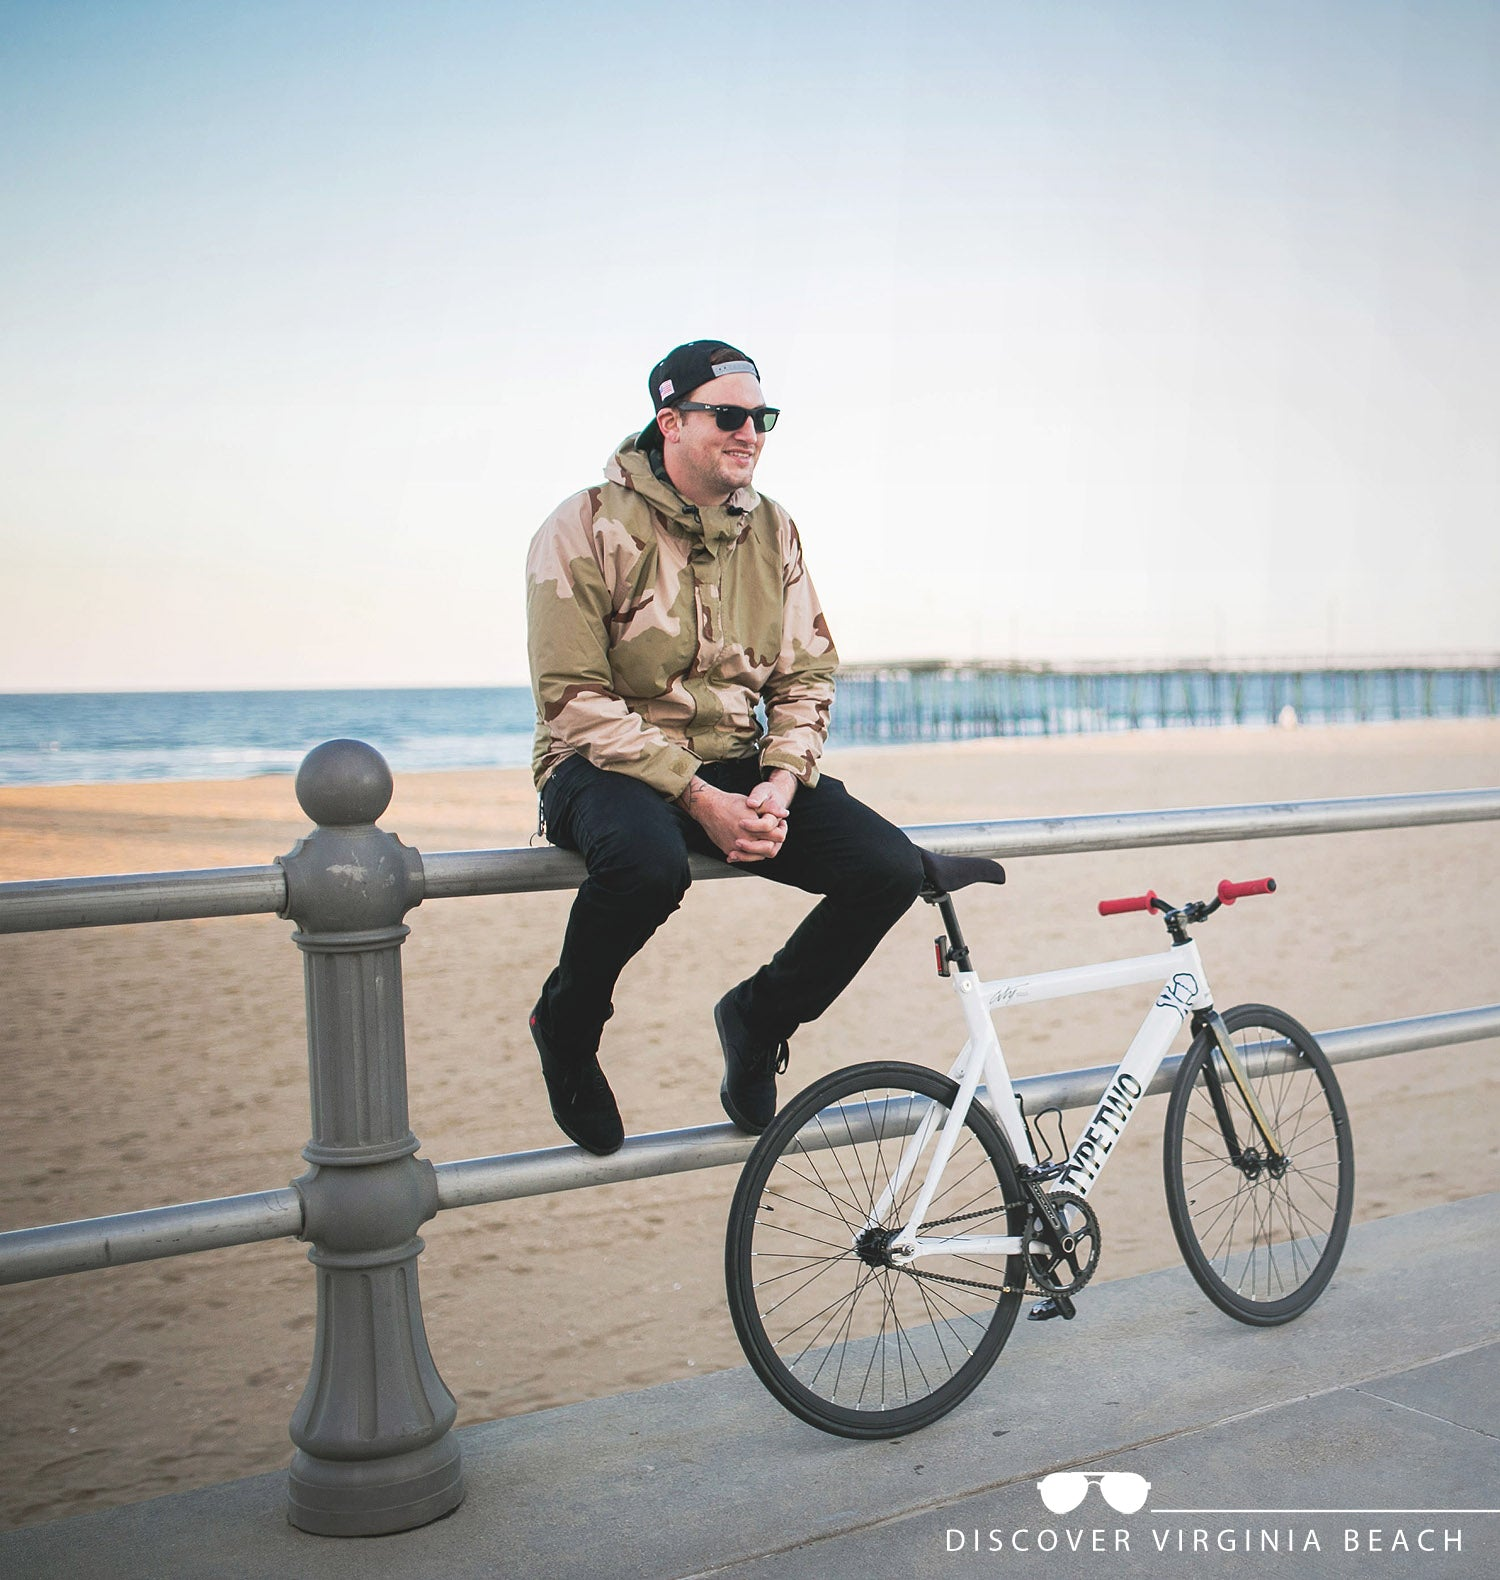 Discover Virginia Beach Lookbook